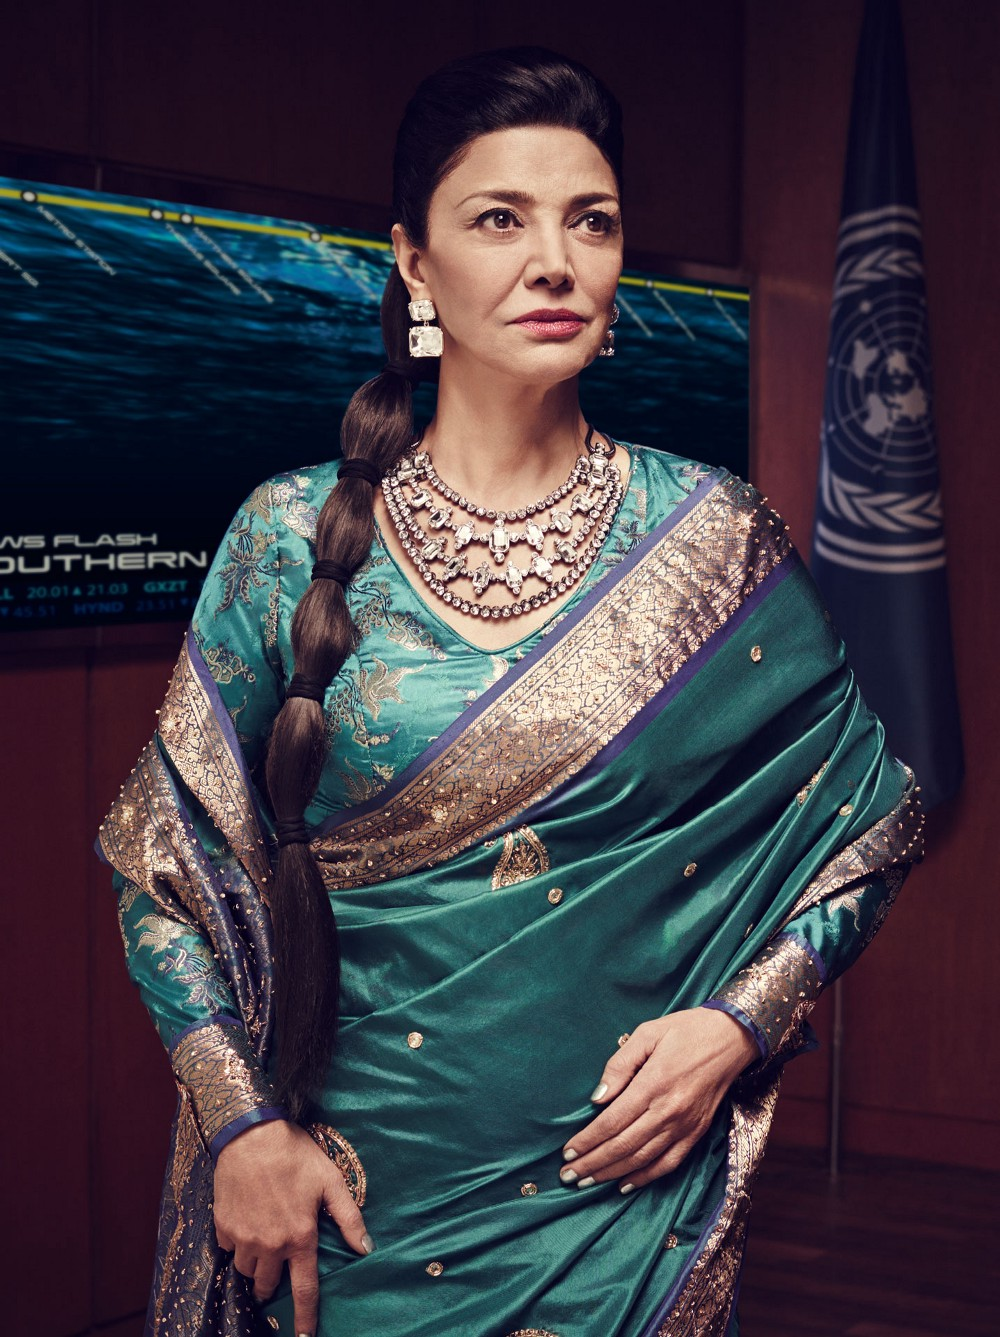 Chrisjen Avasarala from the Expanse. An older tan-skinned woman in an emerald-toned dress.